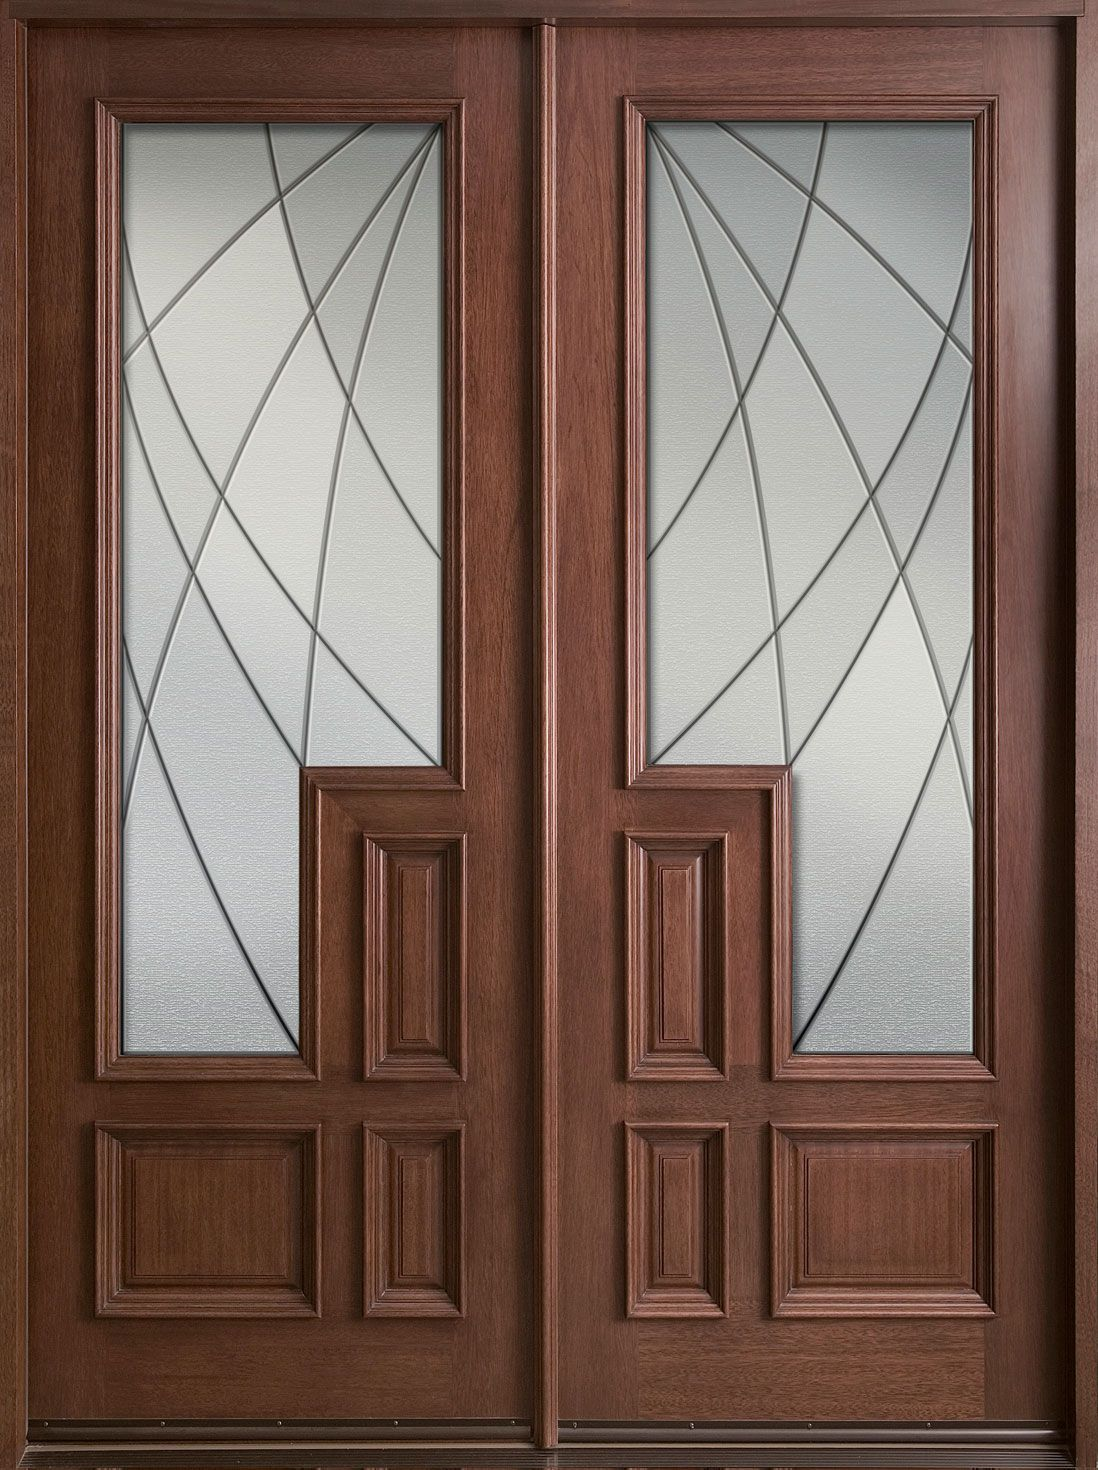 Inspiring double fiberglass entry door as furniture for for Residential doors